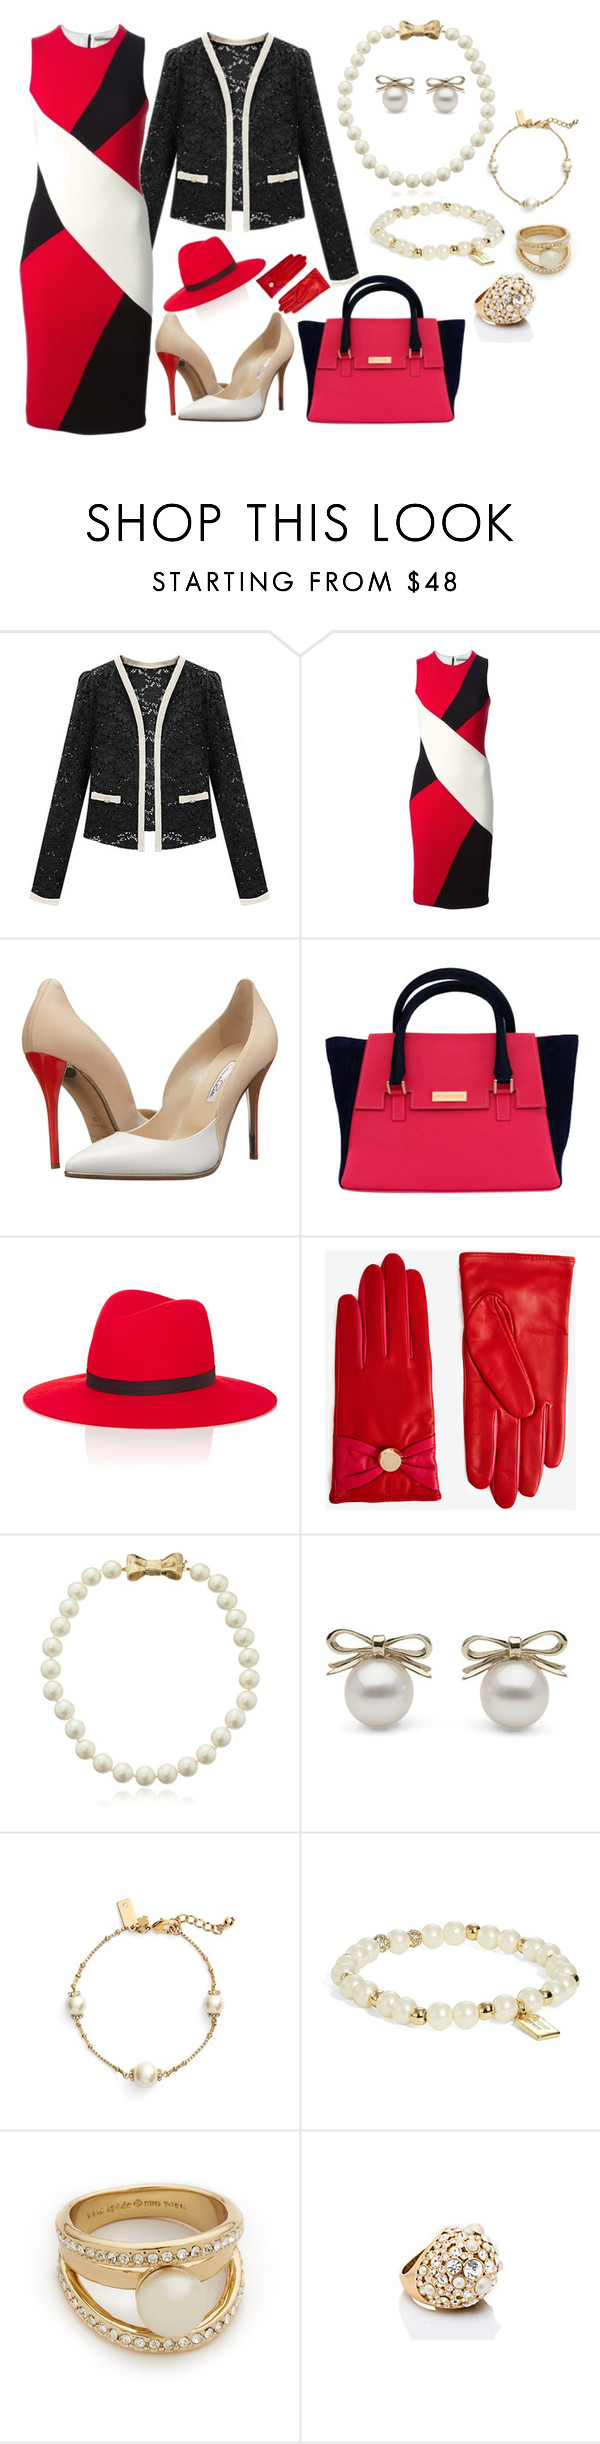 """""""Untitled #873"""" by theranna on Polyvore featuring FAUSTO PUGLISI, Oscar de la Renta, Janessa Leone, Ted Baker, Kate Spade, chic, lace, fashionblogger and pearljewelry"""